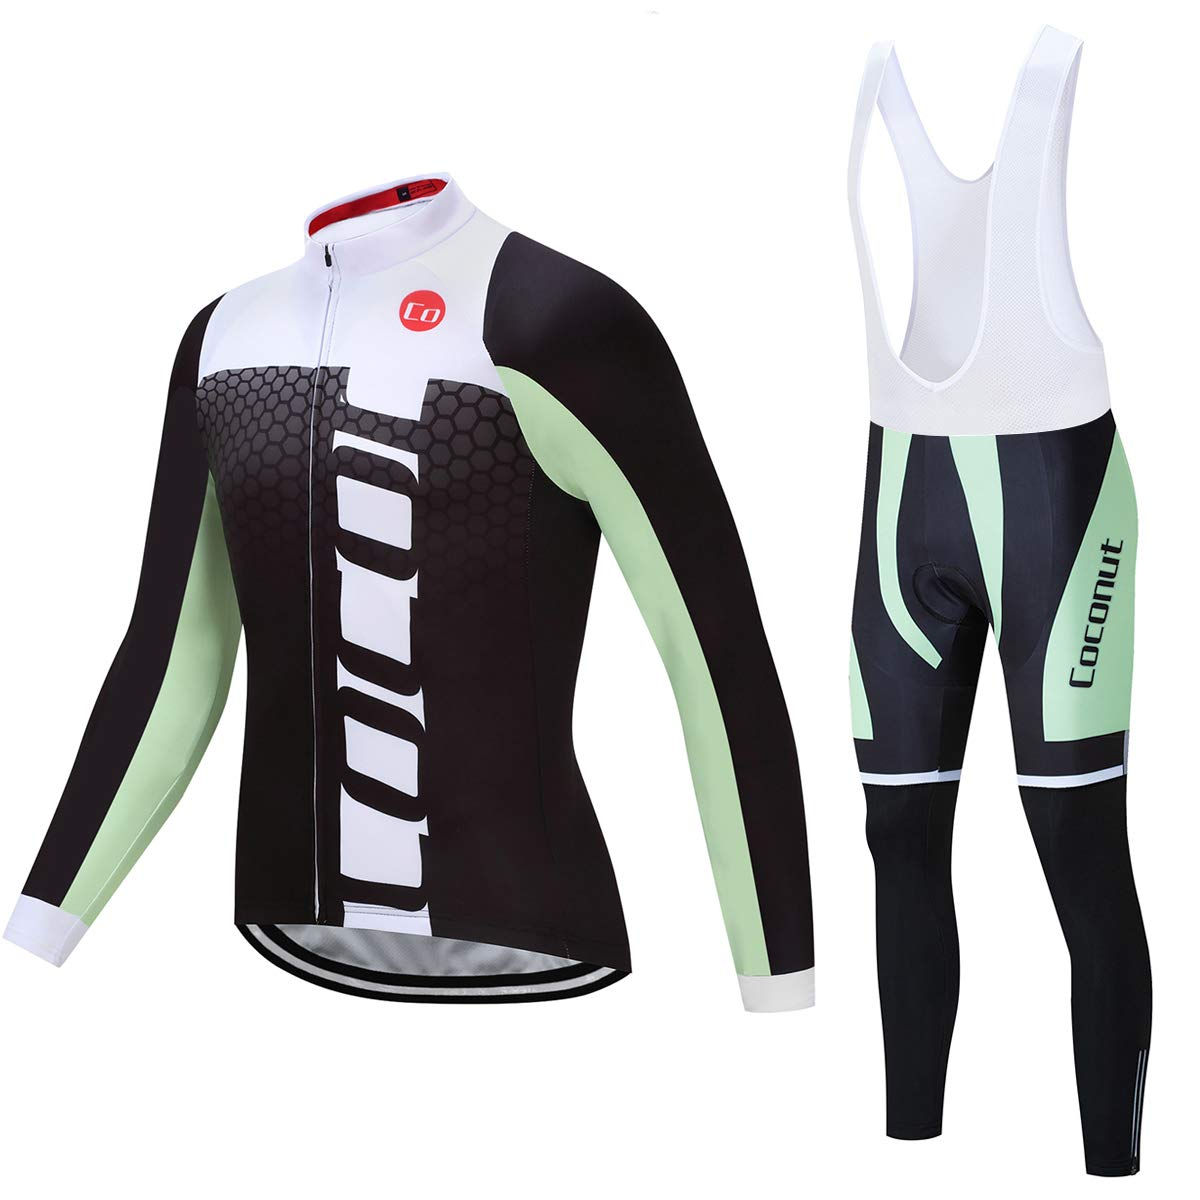 Coconut Ropamo Men's Cycling Jersey Suit Long Sleeve Road Bike Jersey Cycling Sets Tights with Padded (Green/White, Chest 42-44'' Waist 34-36''- XL) by Coconut Ropamo